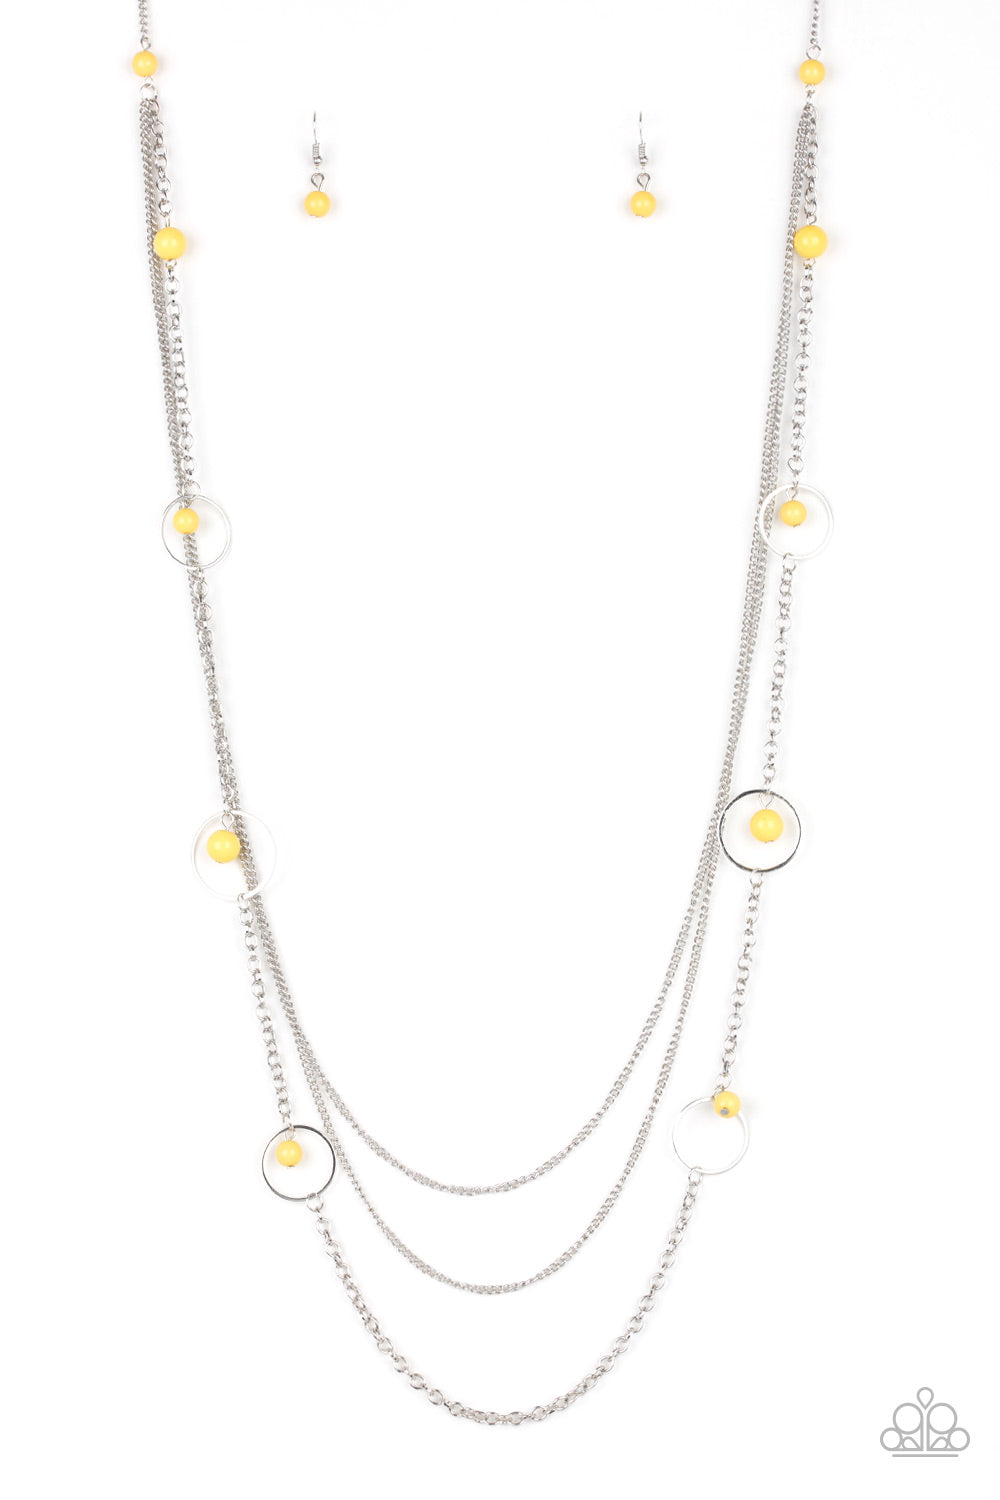 Paparazzi Necklace-Collectively Carefree-Yellow